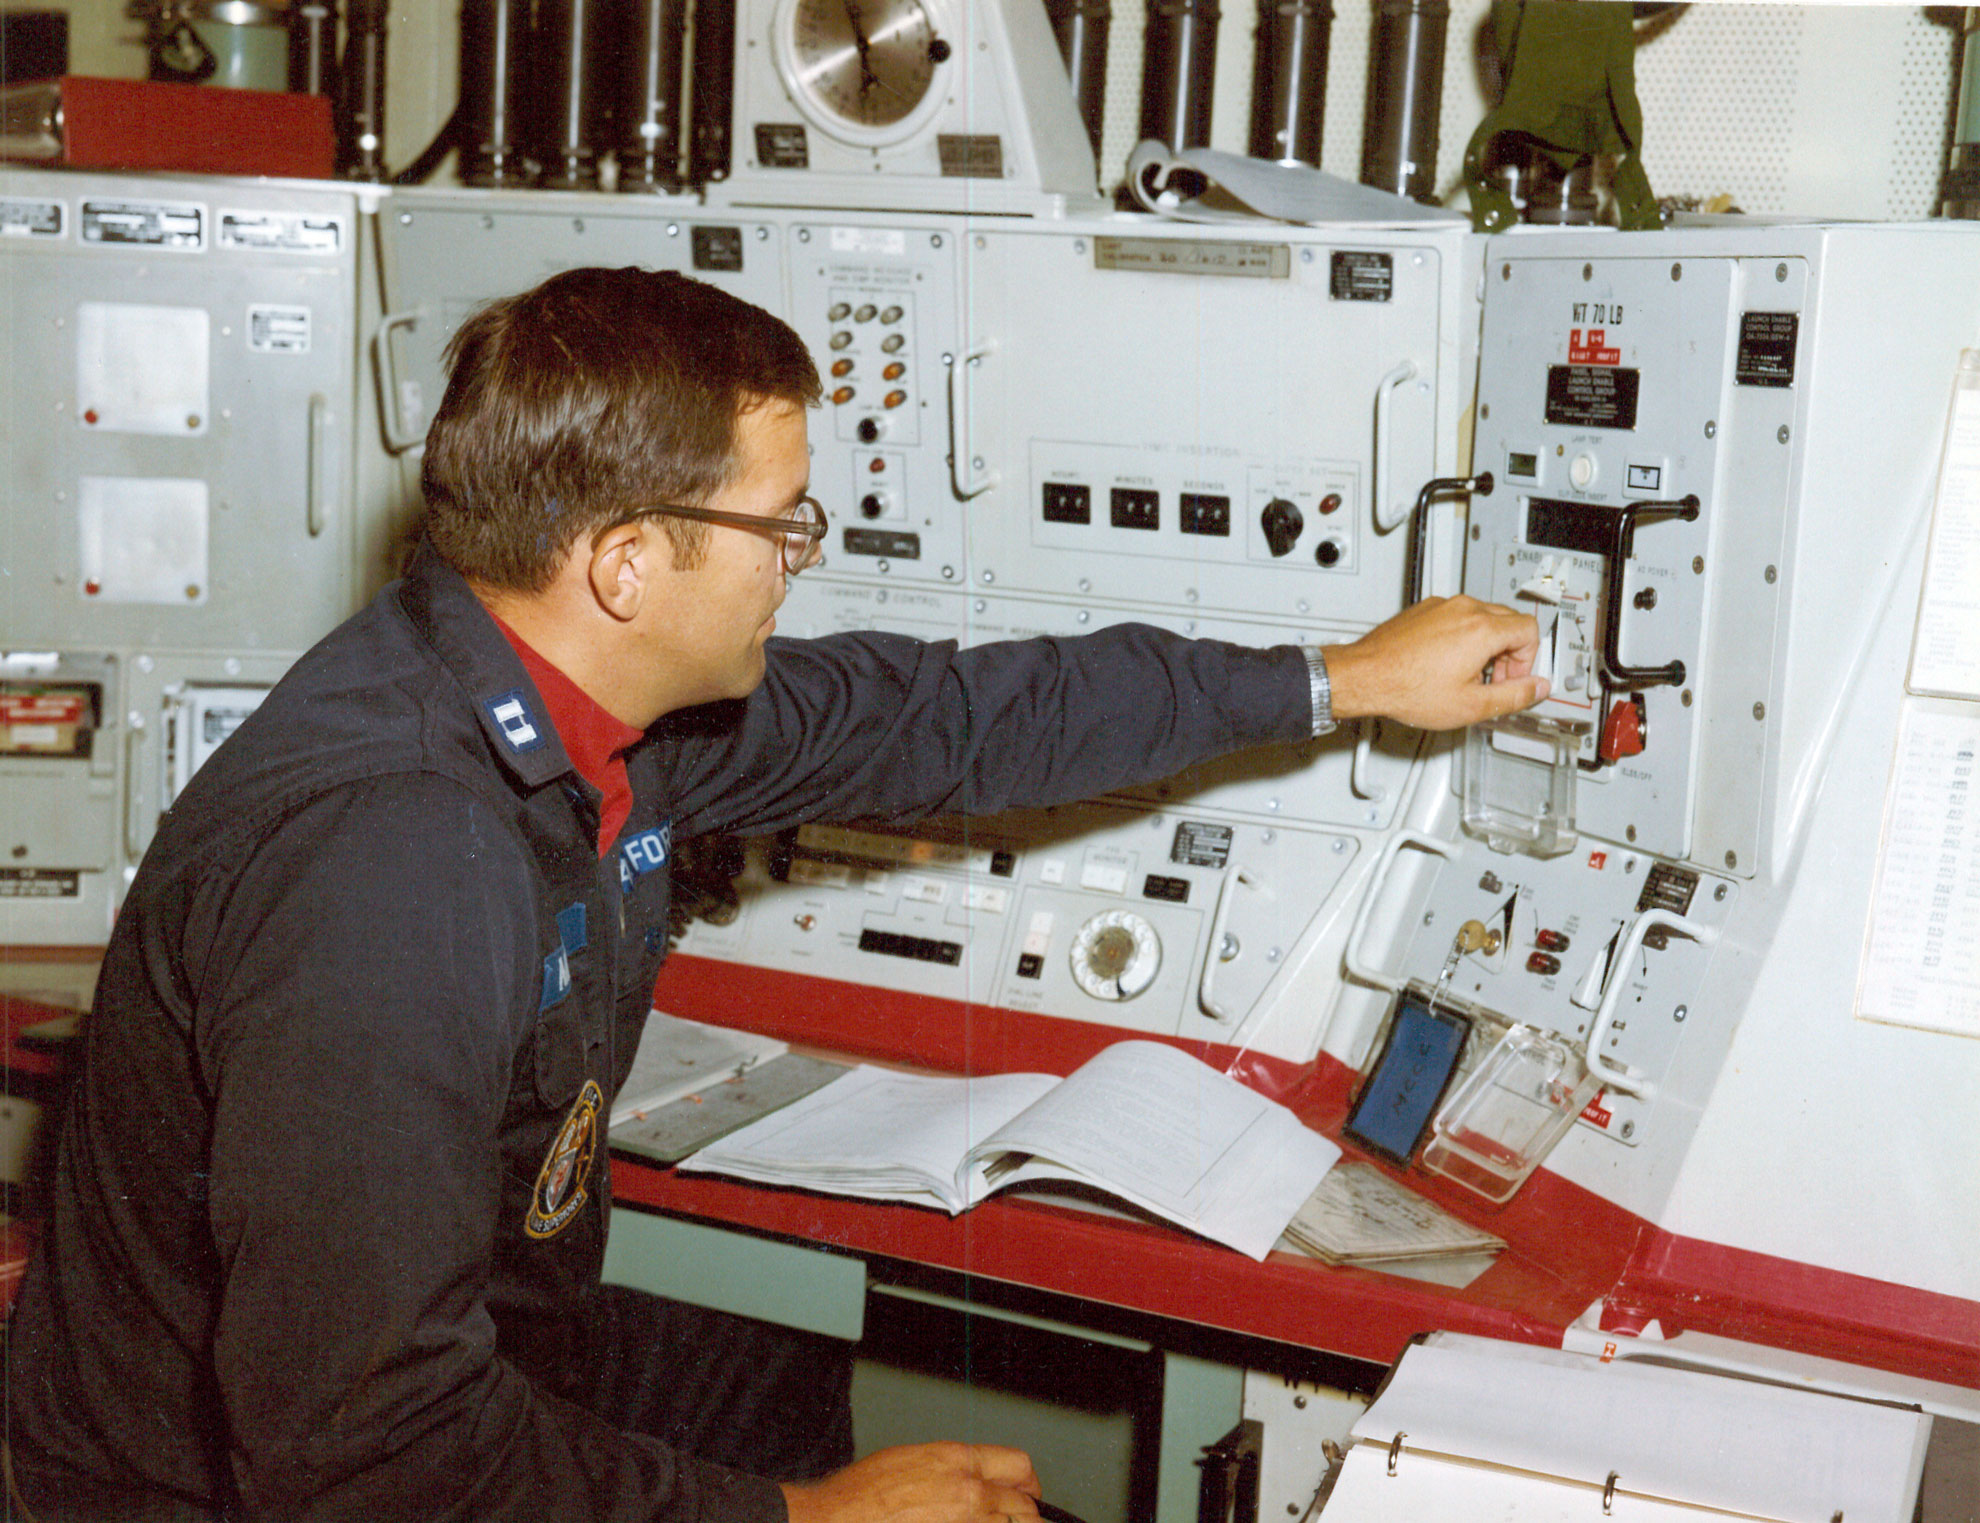 Launch control officer, seated at launch control panel, turns switch to start launching sequence. Testing operational readiness of Minuteman crews using Modified Operational Missiles